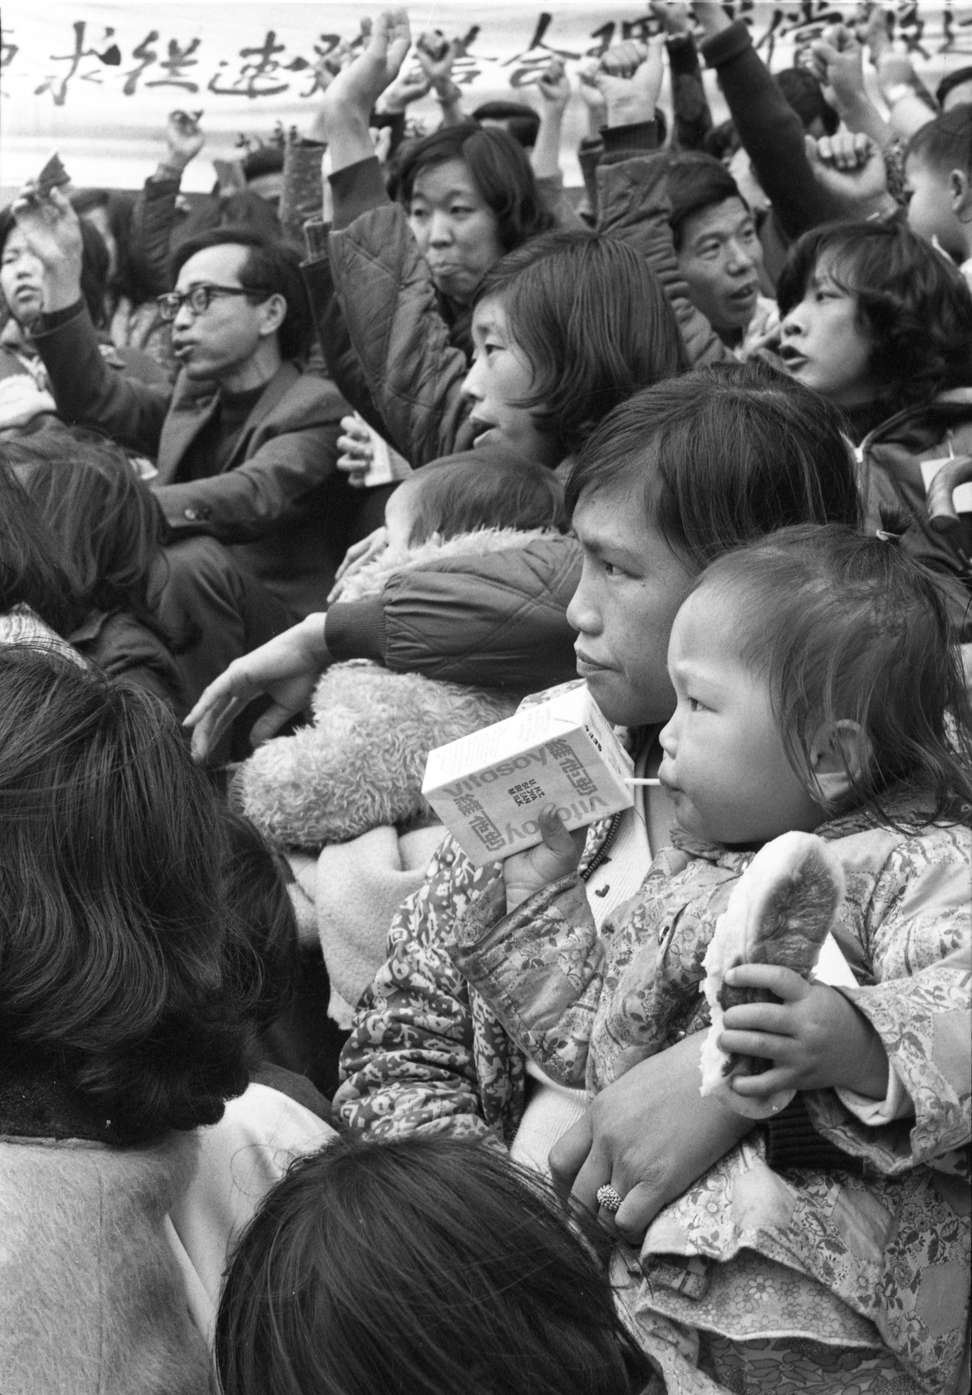 A toddler drinks Vitasoy as residents from a Kowloon Bay temporary housing area who were made homeless by a fire stage a rally outside the Housing Department headquarters in Ho Man Tin to press for rehousing and compensation, in this photo from 1978. Photo: SCMP